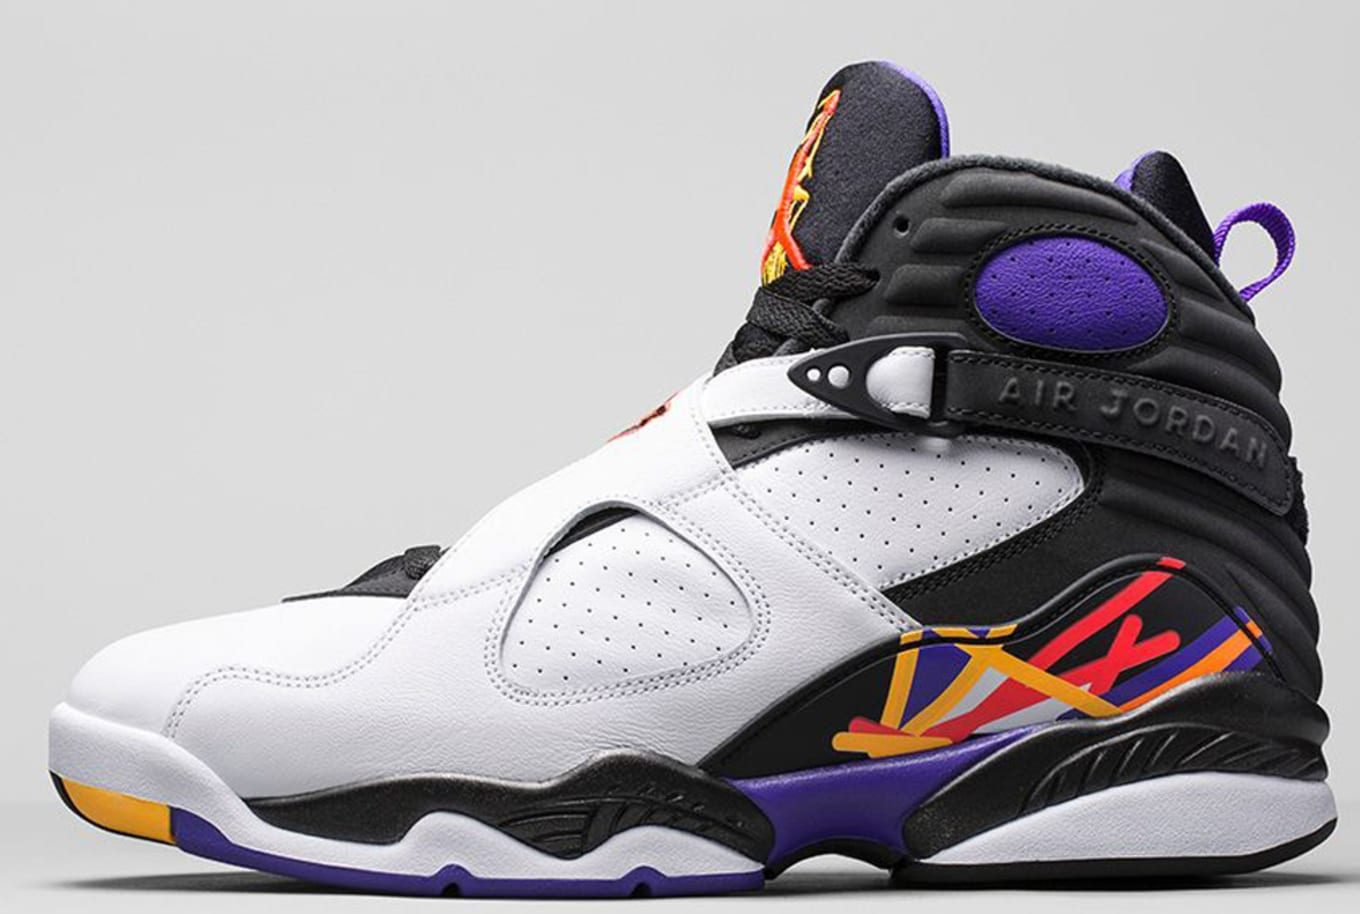 timeless design 78054 804e1 Air Jordan 8 Retro